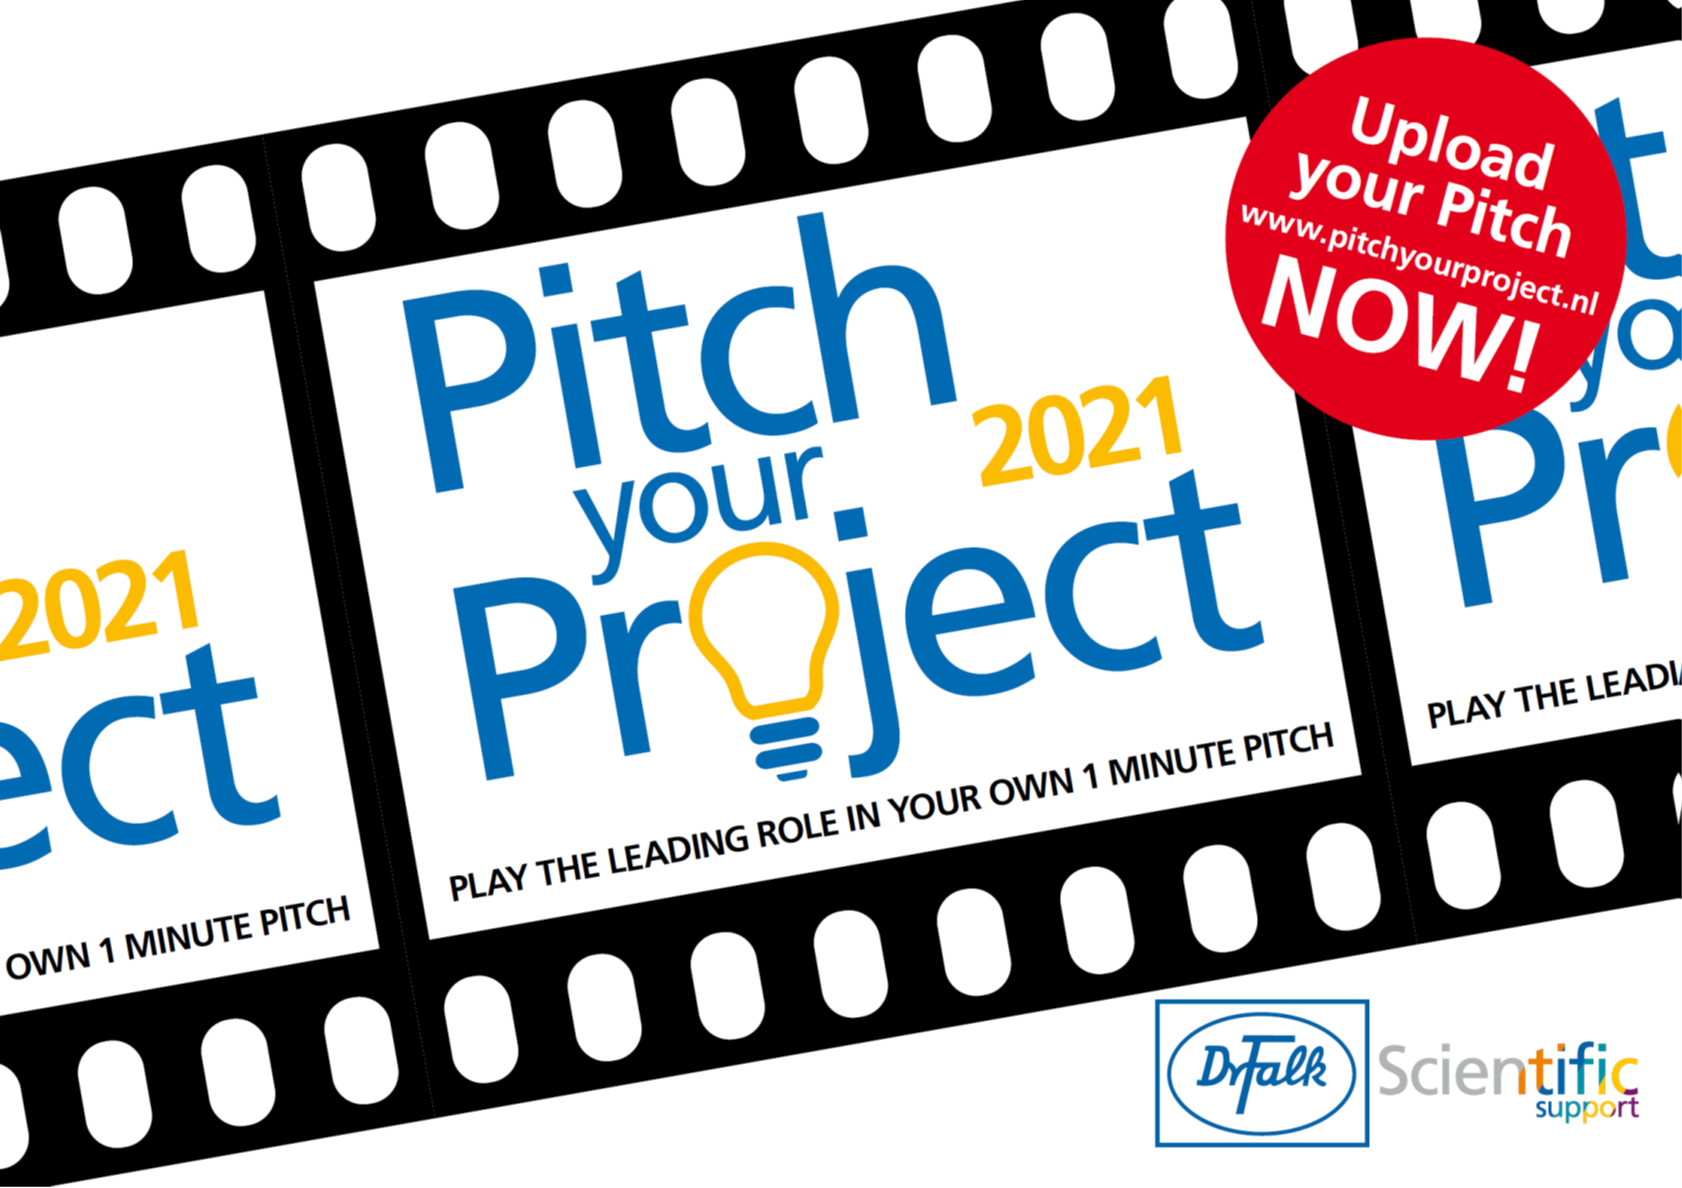 Pitch your Project